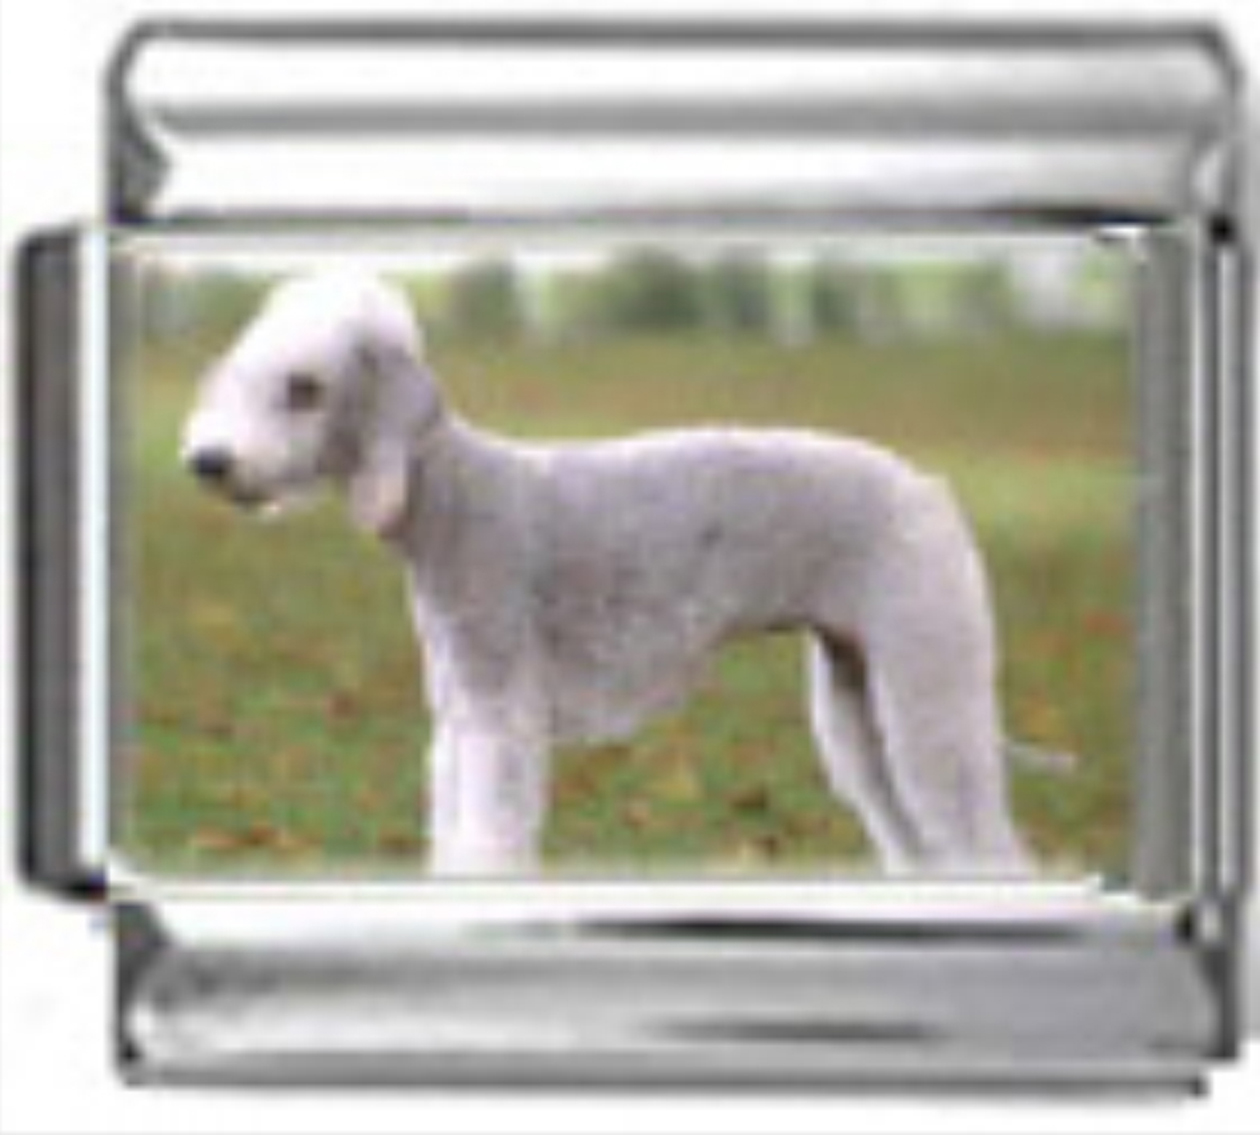 DG063-Bedlington-Terrier-Dog-1